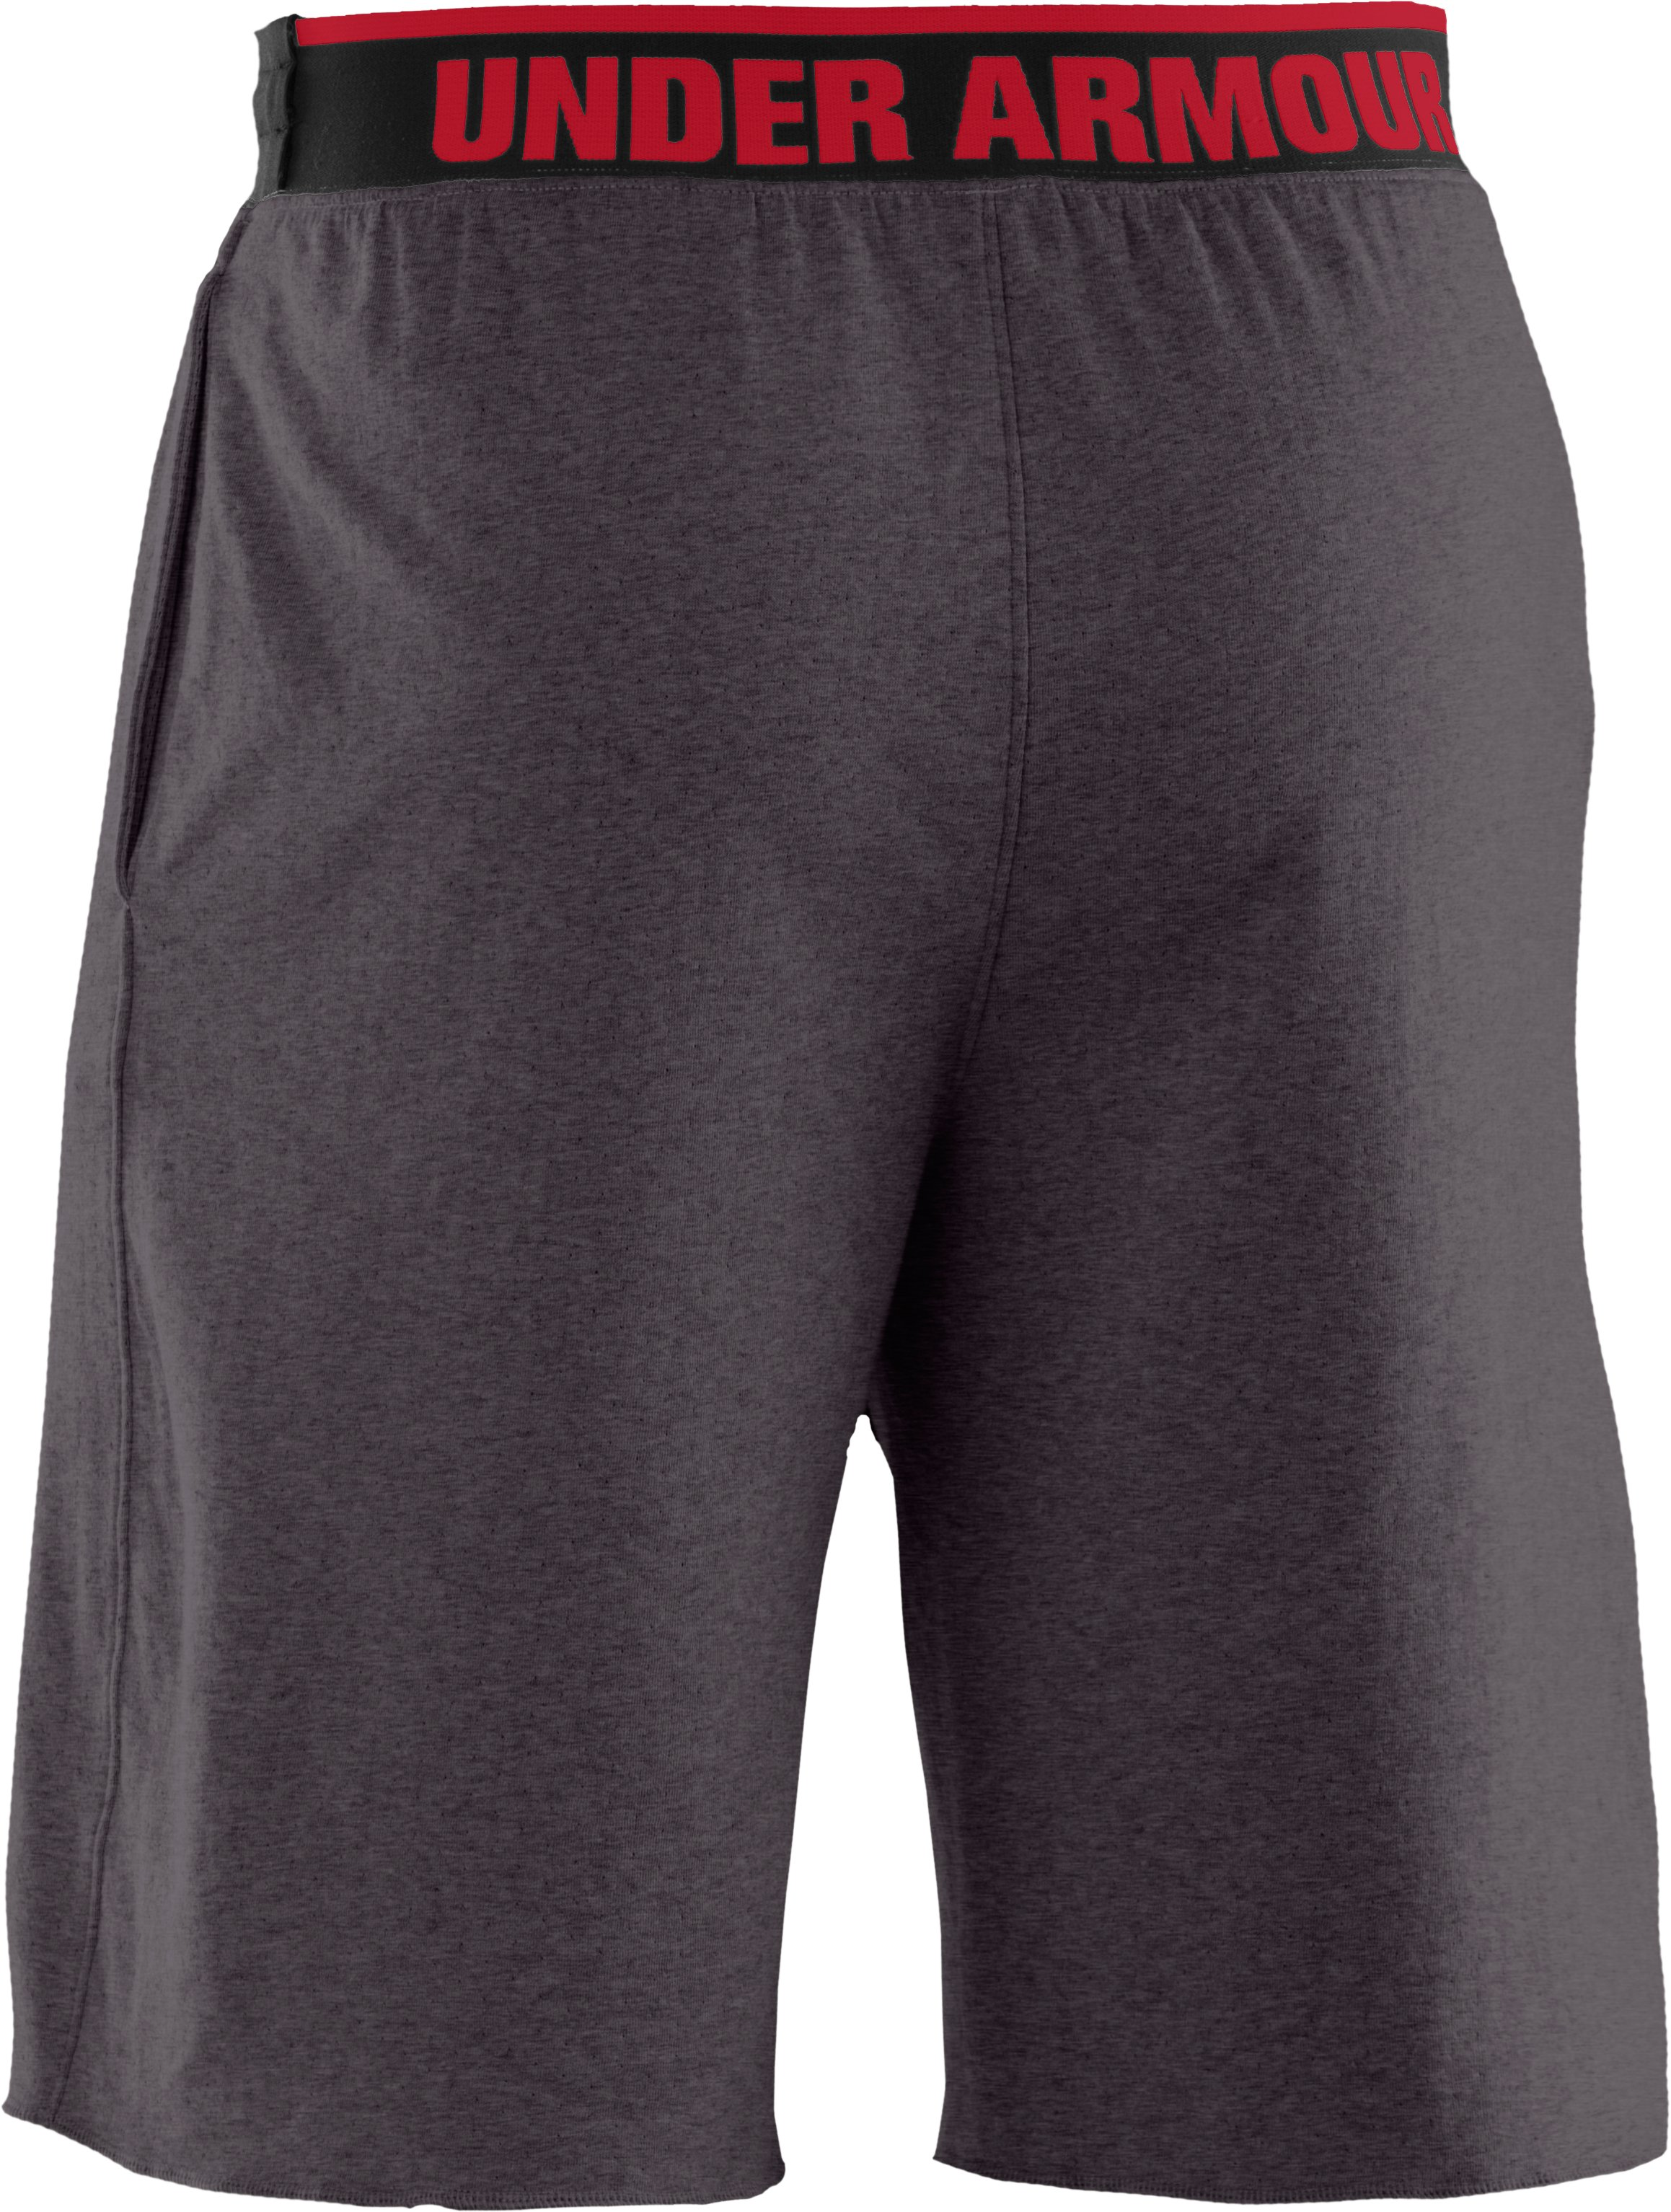 Men's Charged Cotton® Contender Shorts, Carbon Heather